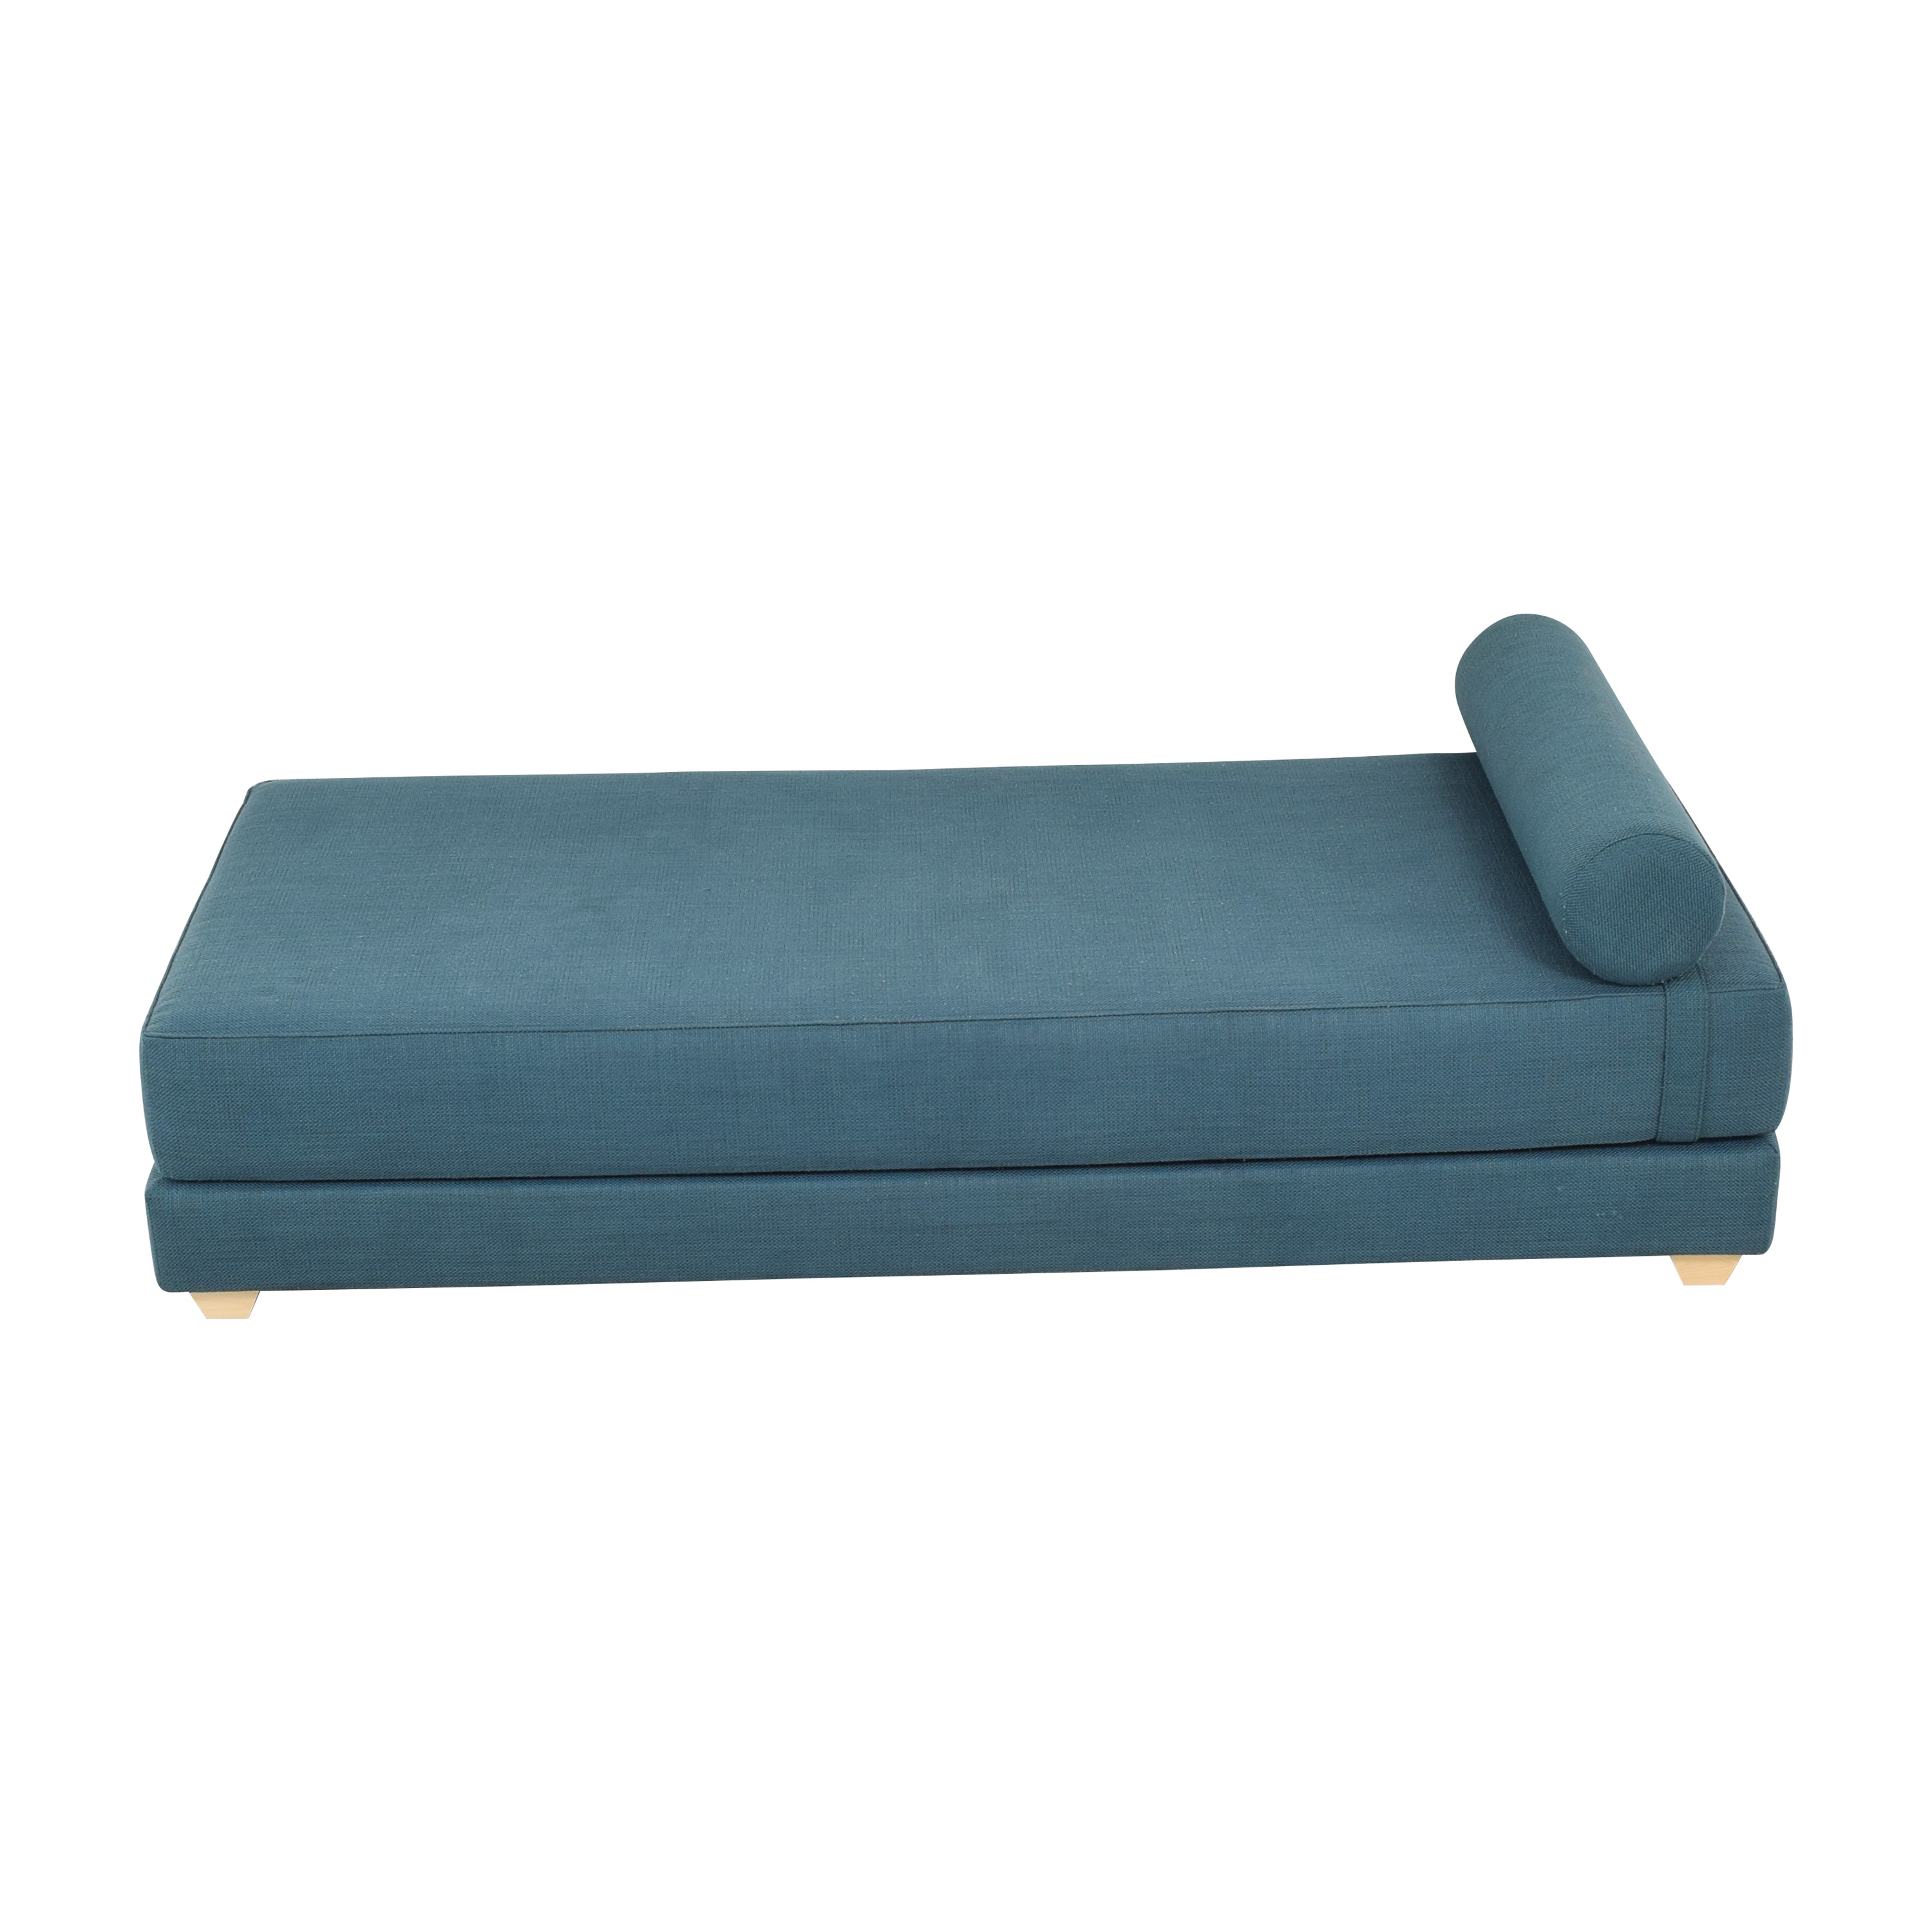 CB2 CB2 Lubi Blue Daybed Sleeper second hand